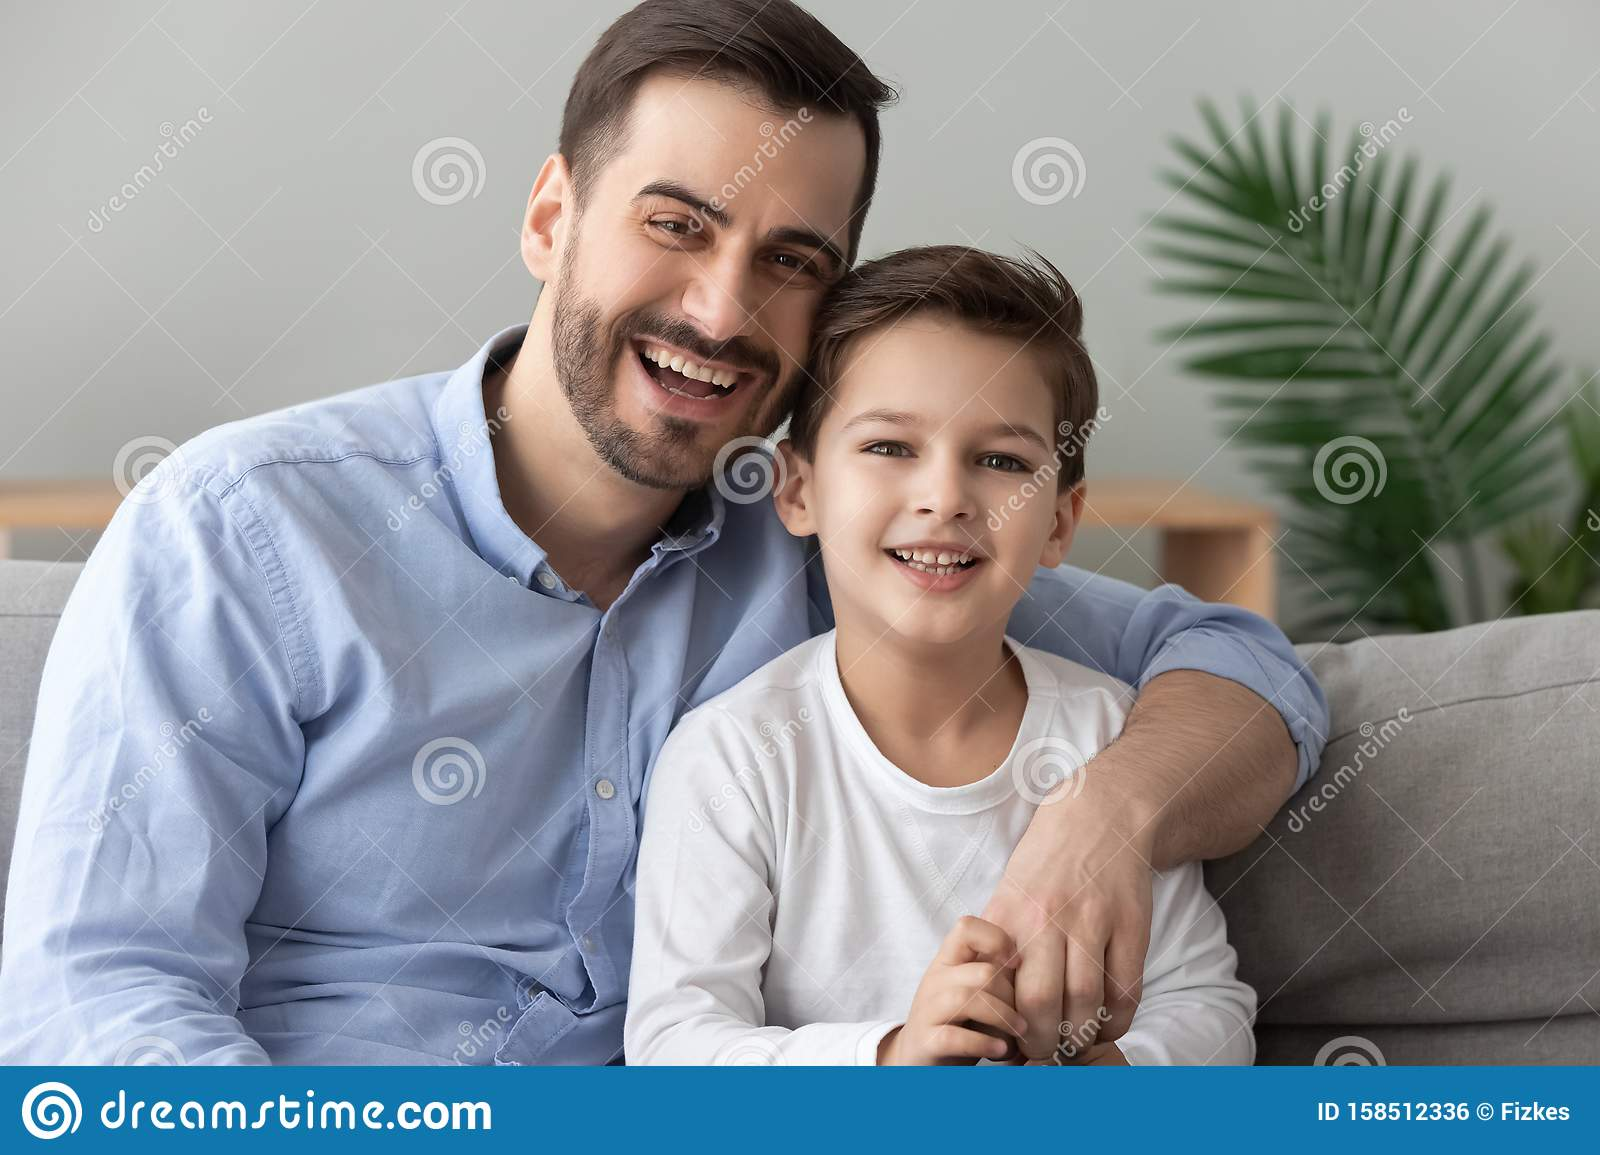 Happy Dad Embracing Son Looking At Camera Sit On Sofa Stock Photo